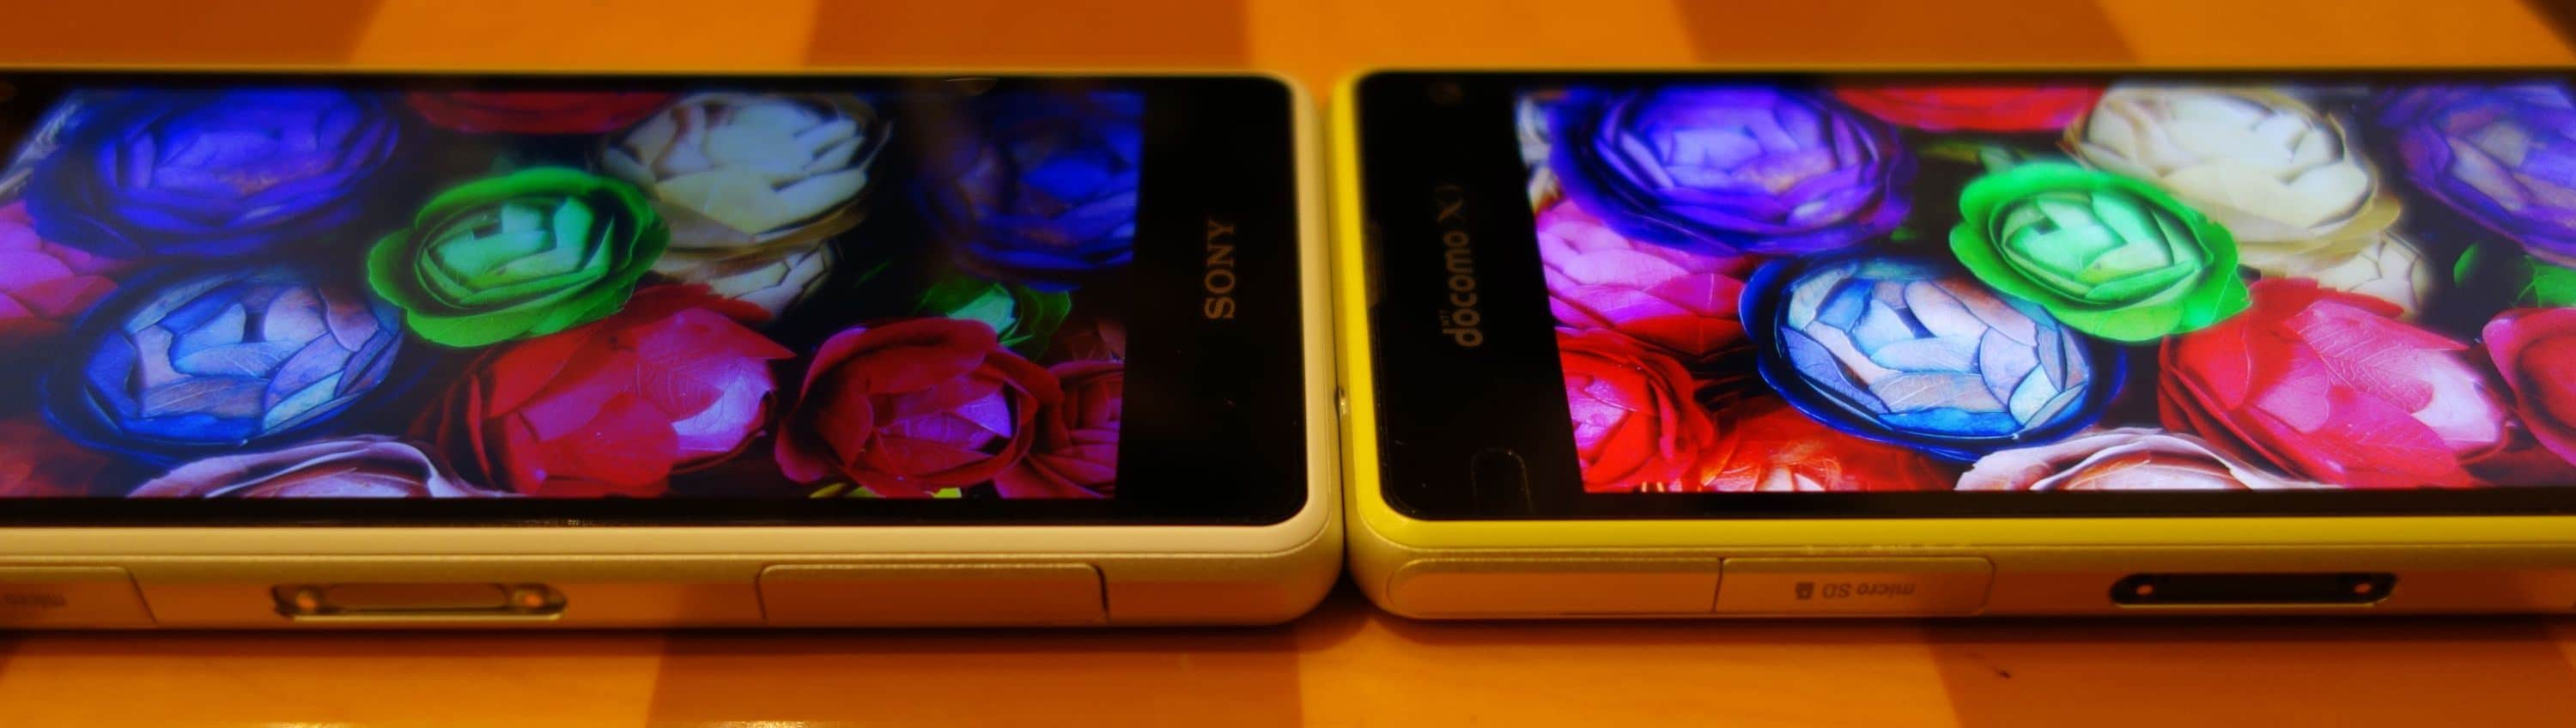 Xperia-Z1-f-display-lottery_2